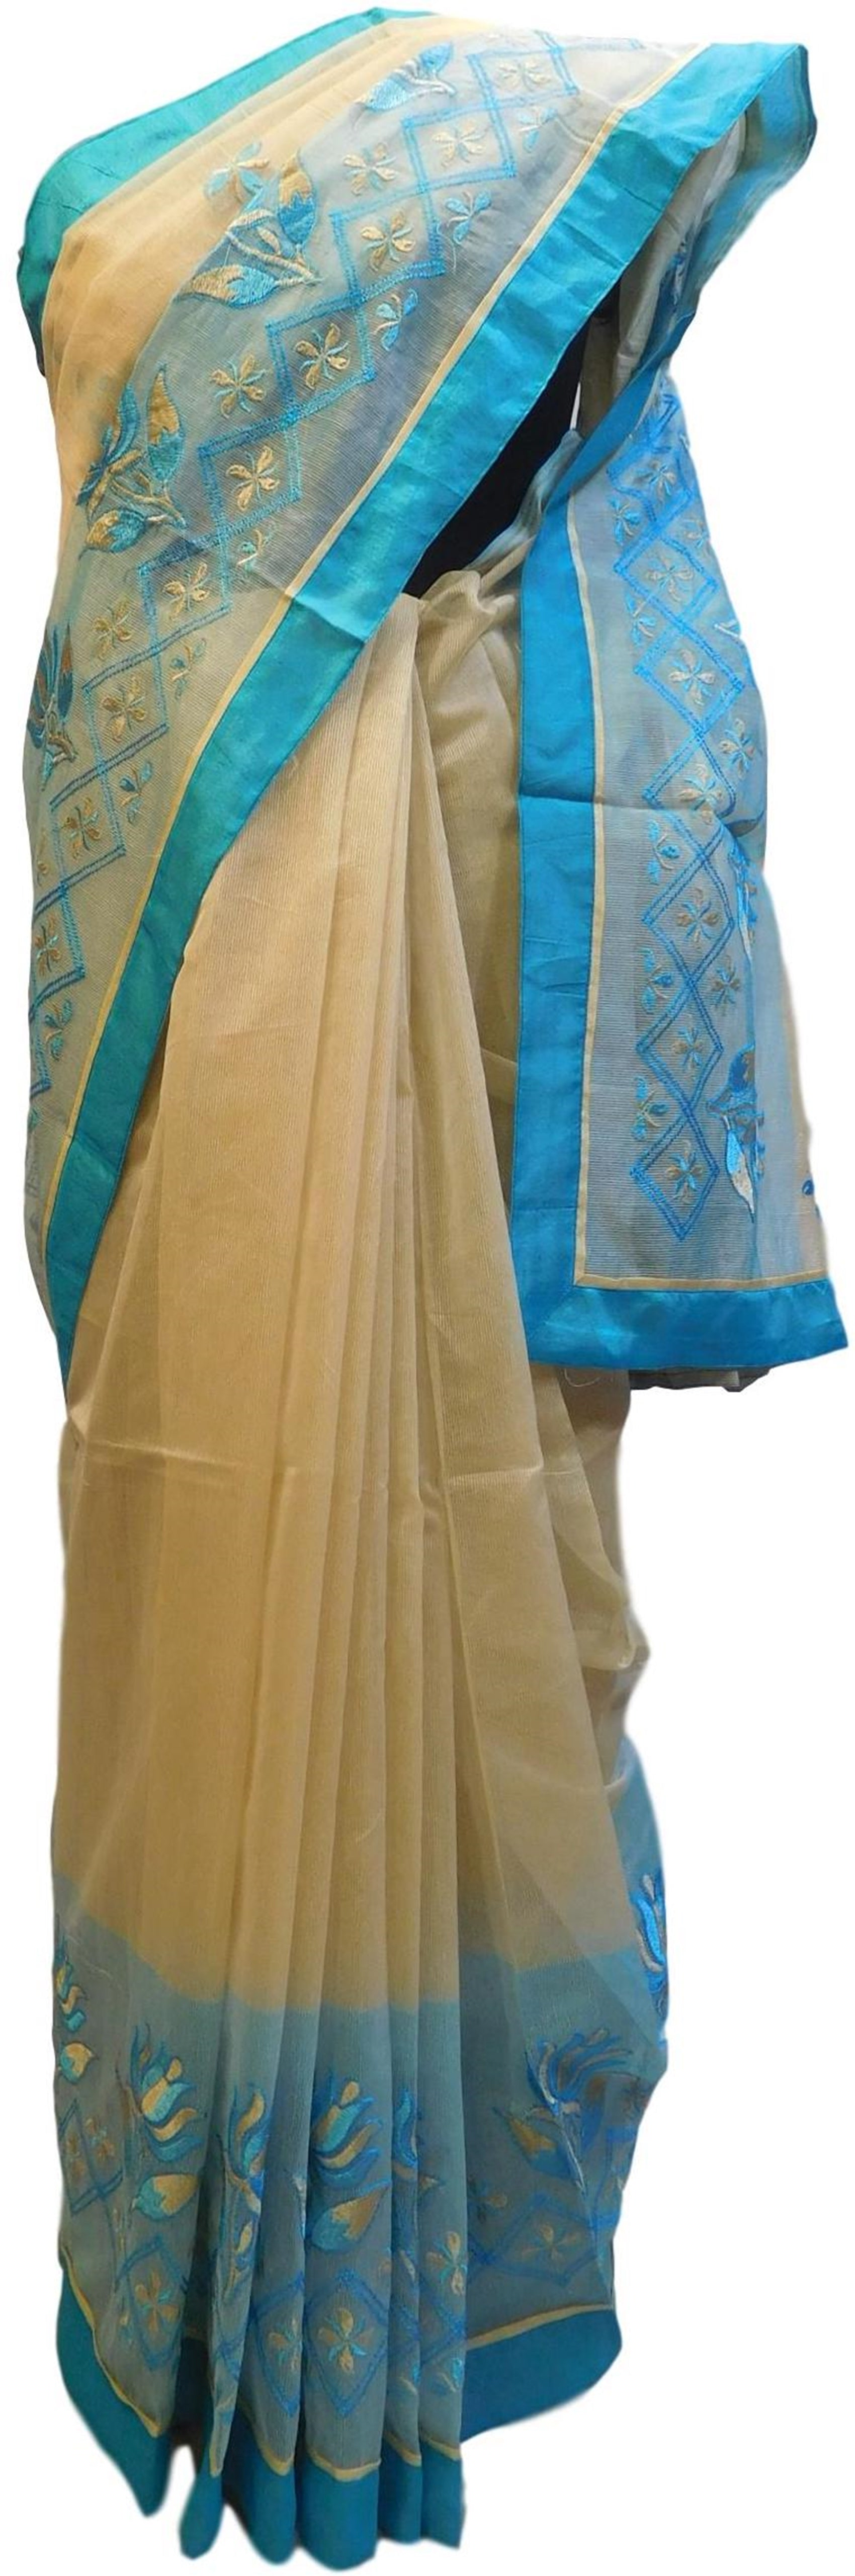 Beige & Blue Designer PartyWear Pure Supernet (Cotton) Thread Work Saree Sari E233